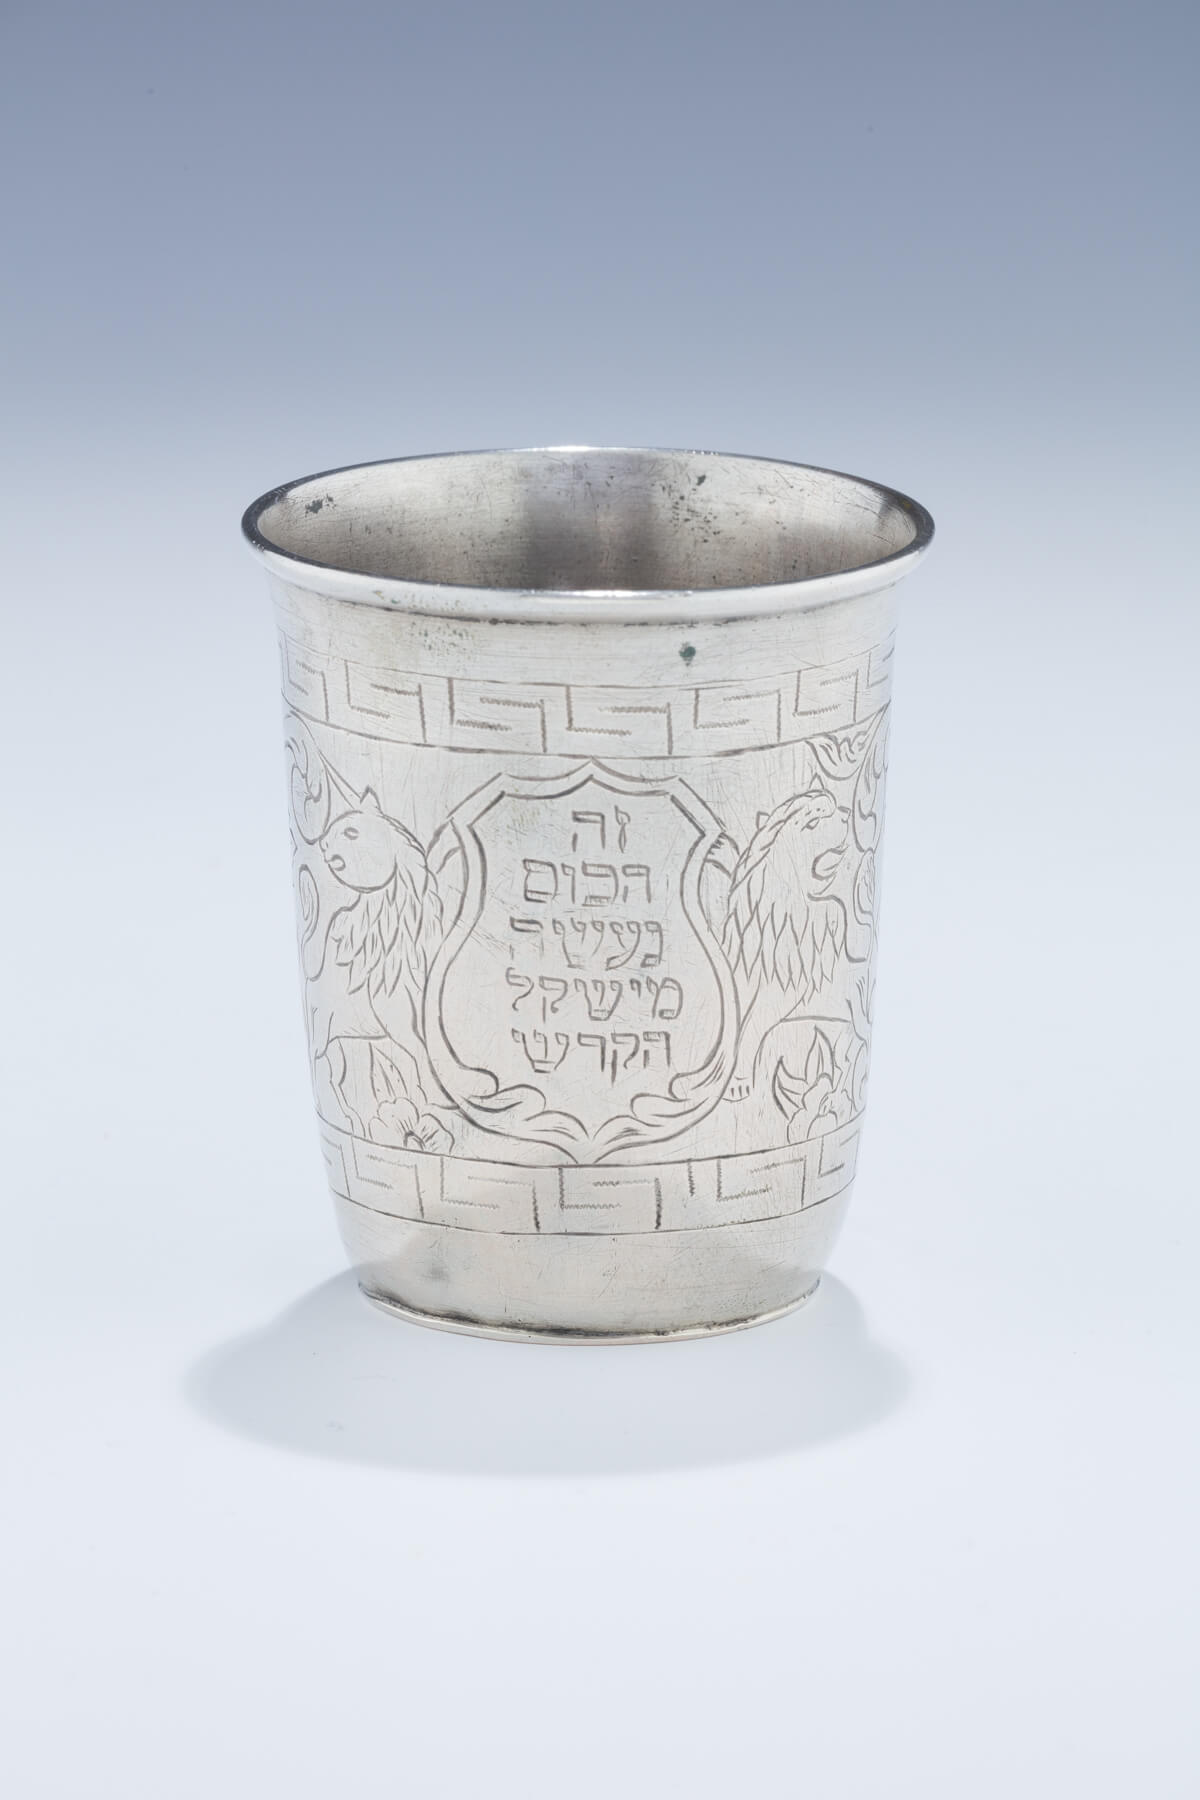 128. An Early Kiddush Cup Made of Shmirah Silver